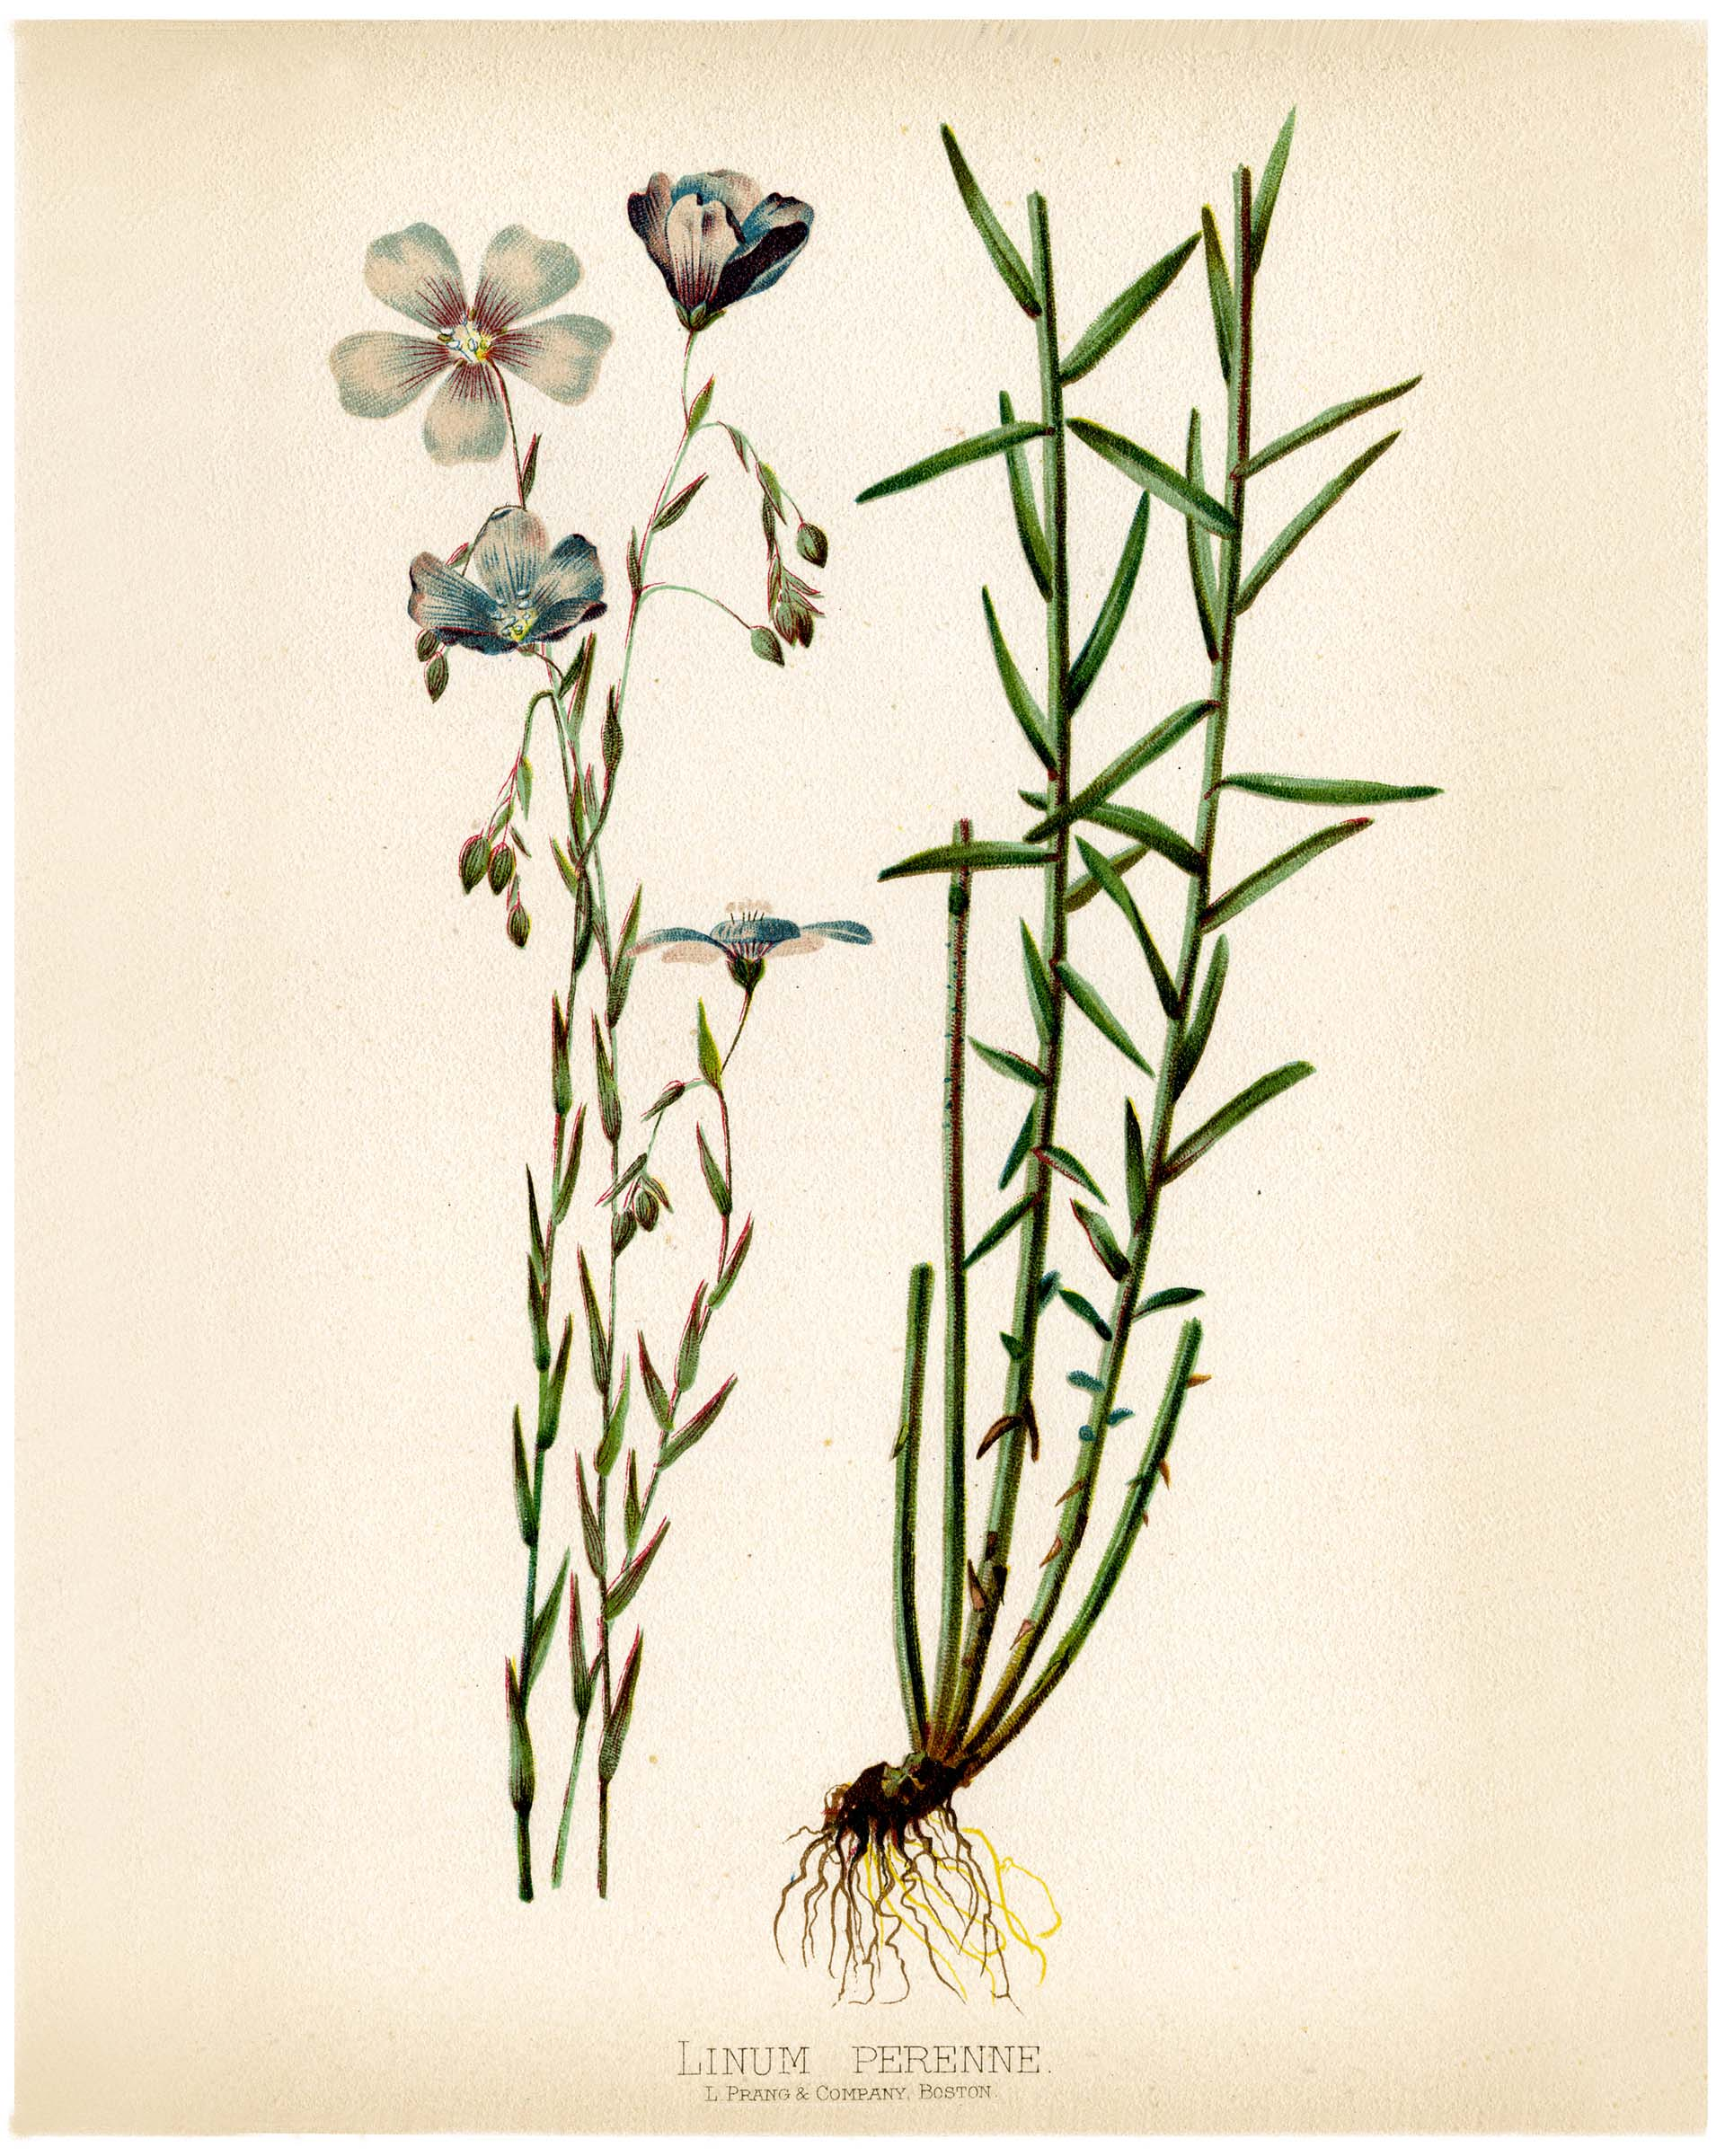 Linium perenne (blue flax, lint) by Alois Lunzer